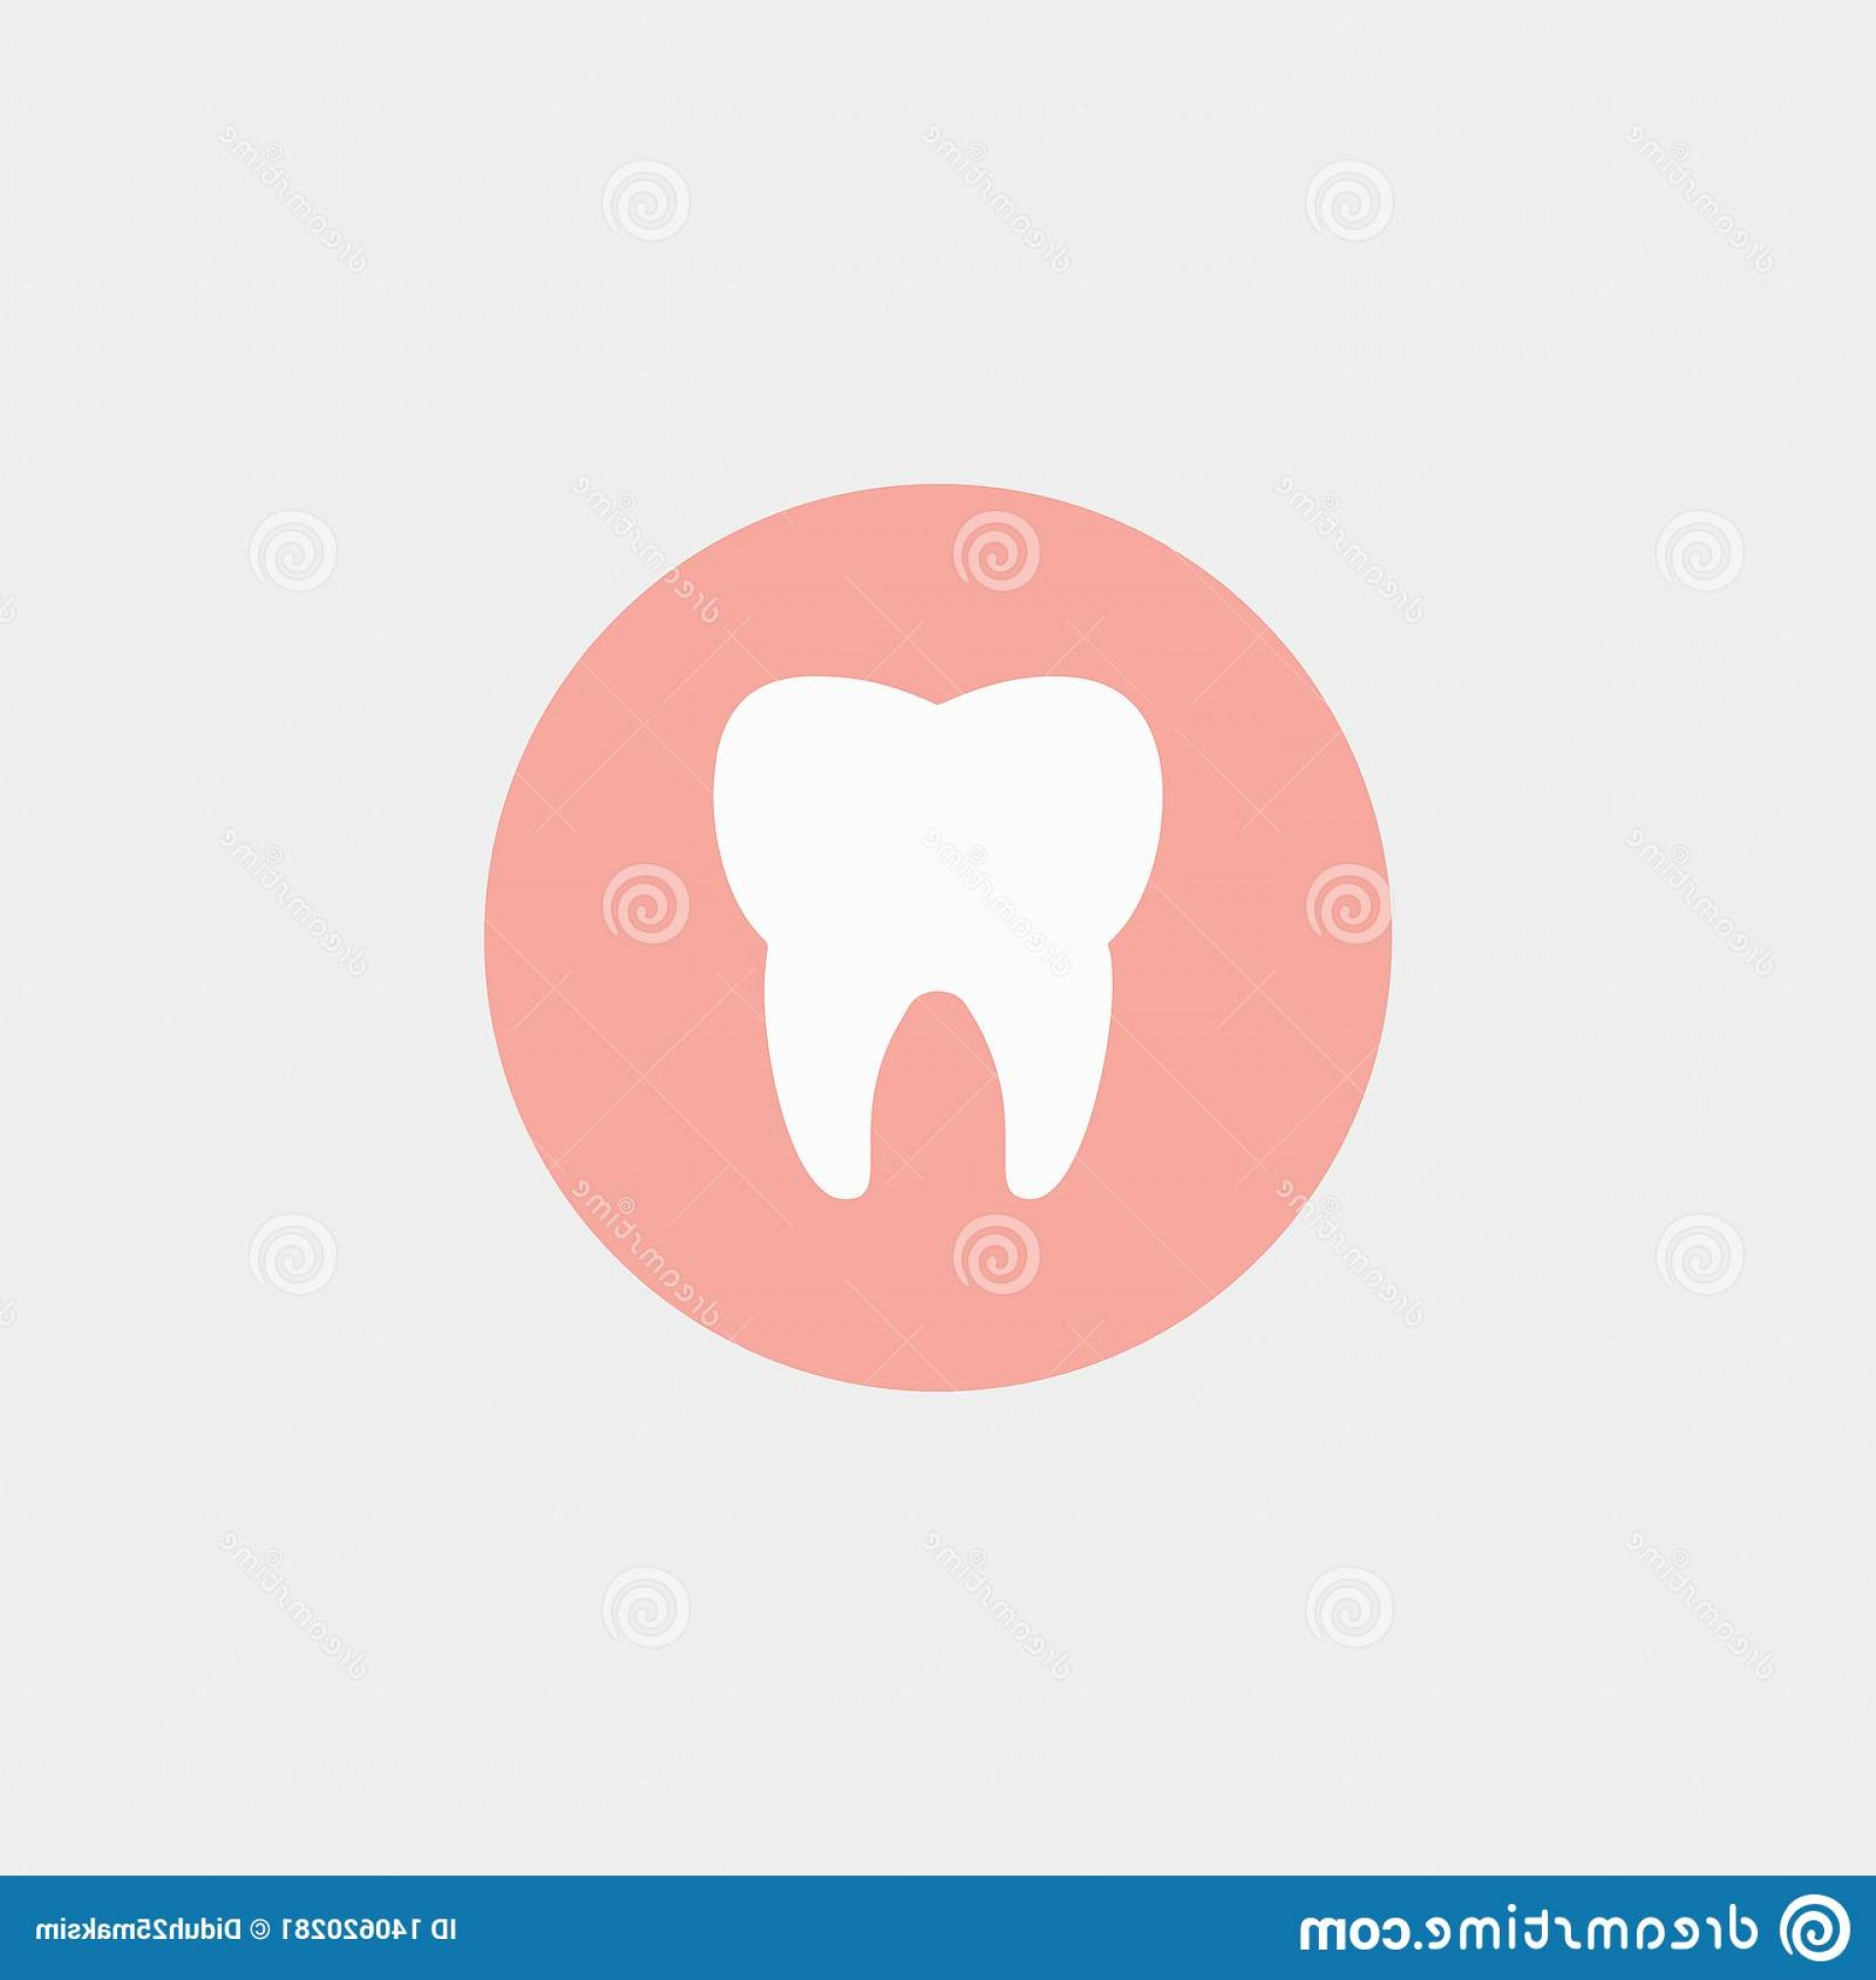 Tooth Vector Logo: Dental Logo Dentist Tooth Vector Illustration Eps Clean Image